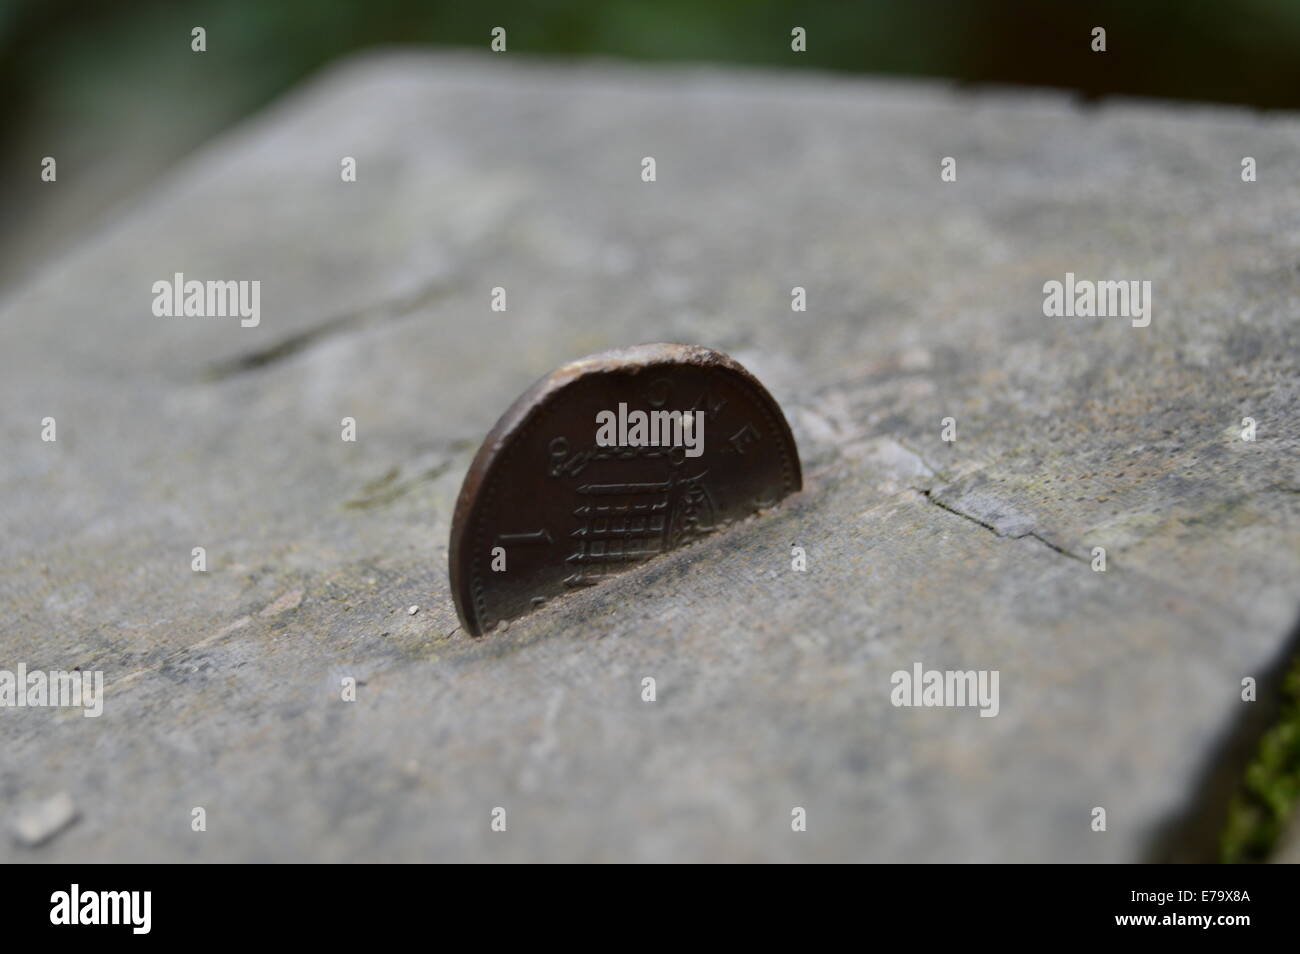 1 pence piece coin stuck in a piece of wood - Stock Image